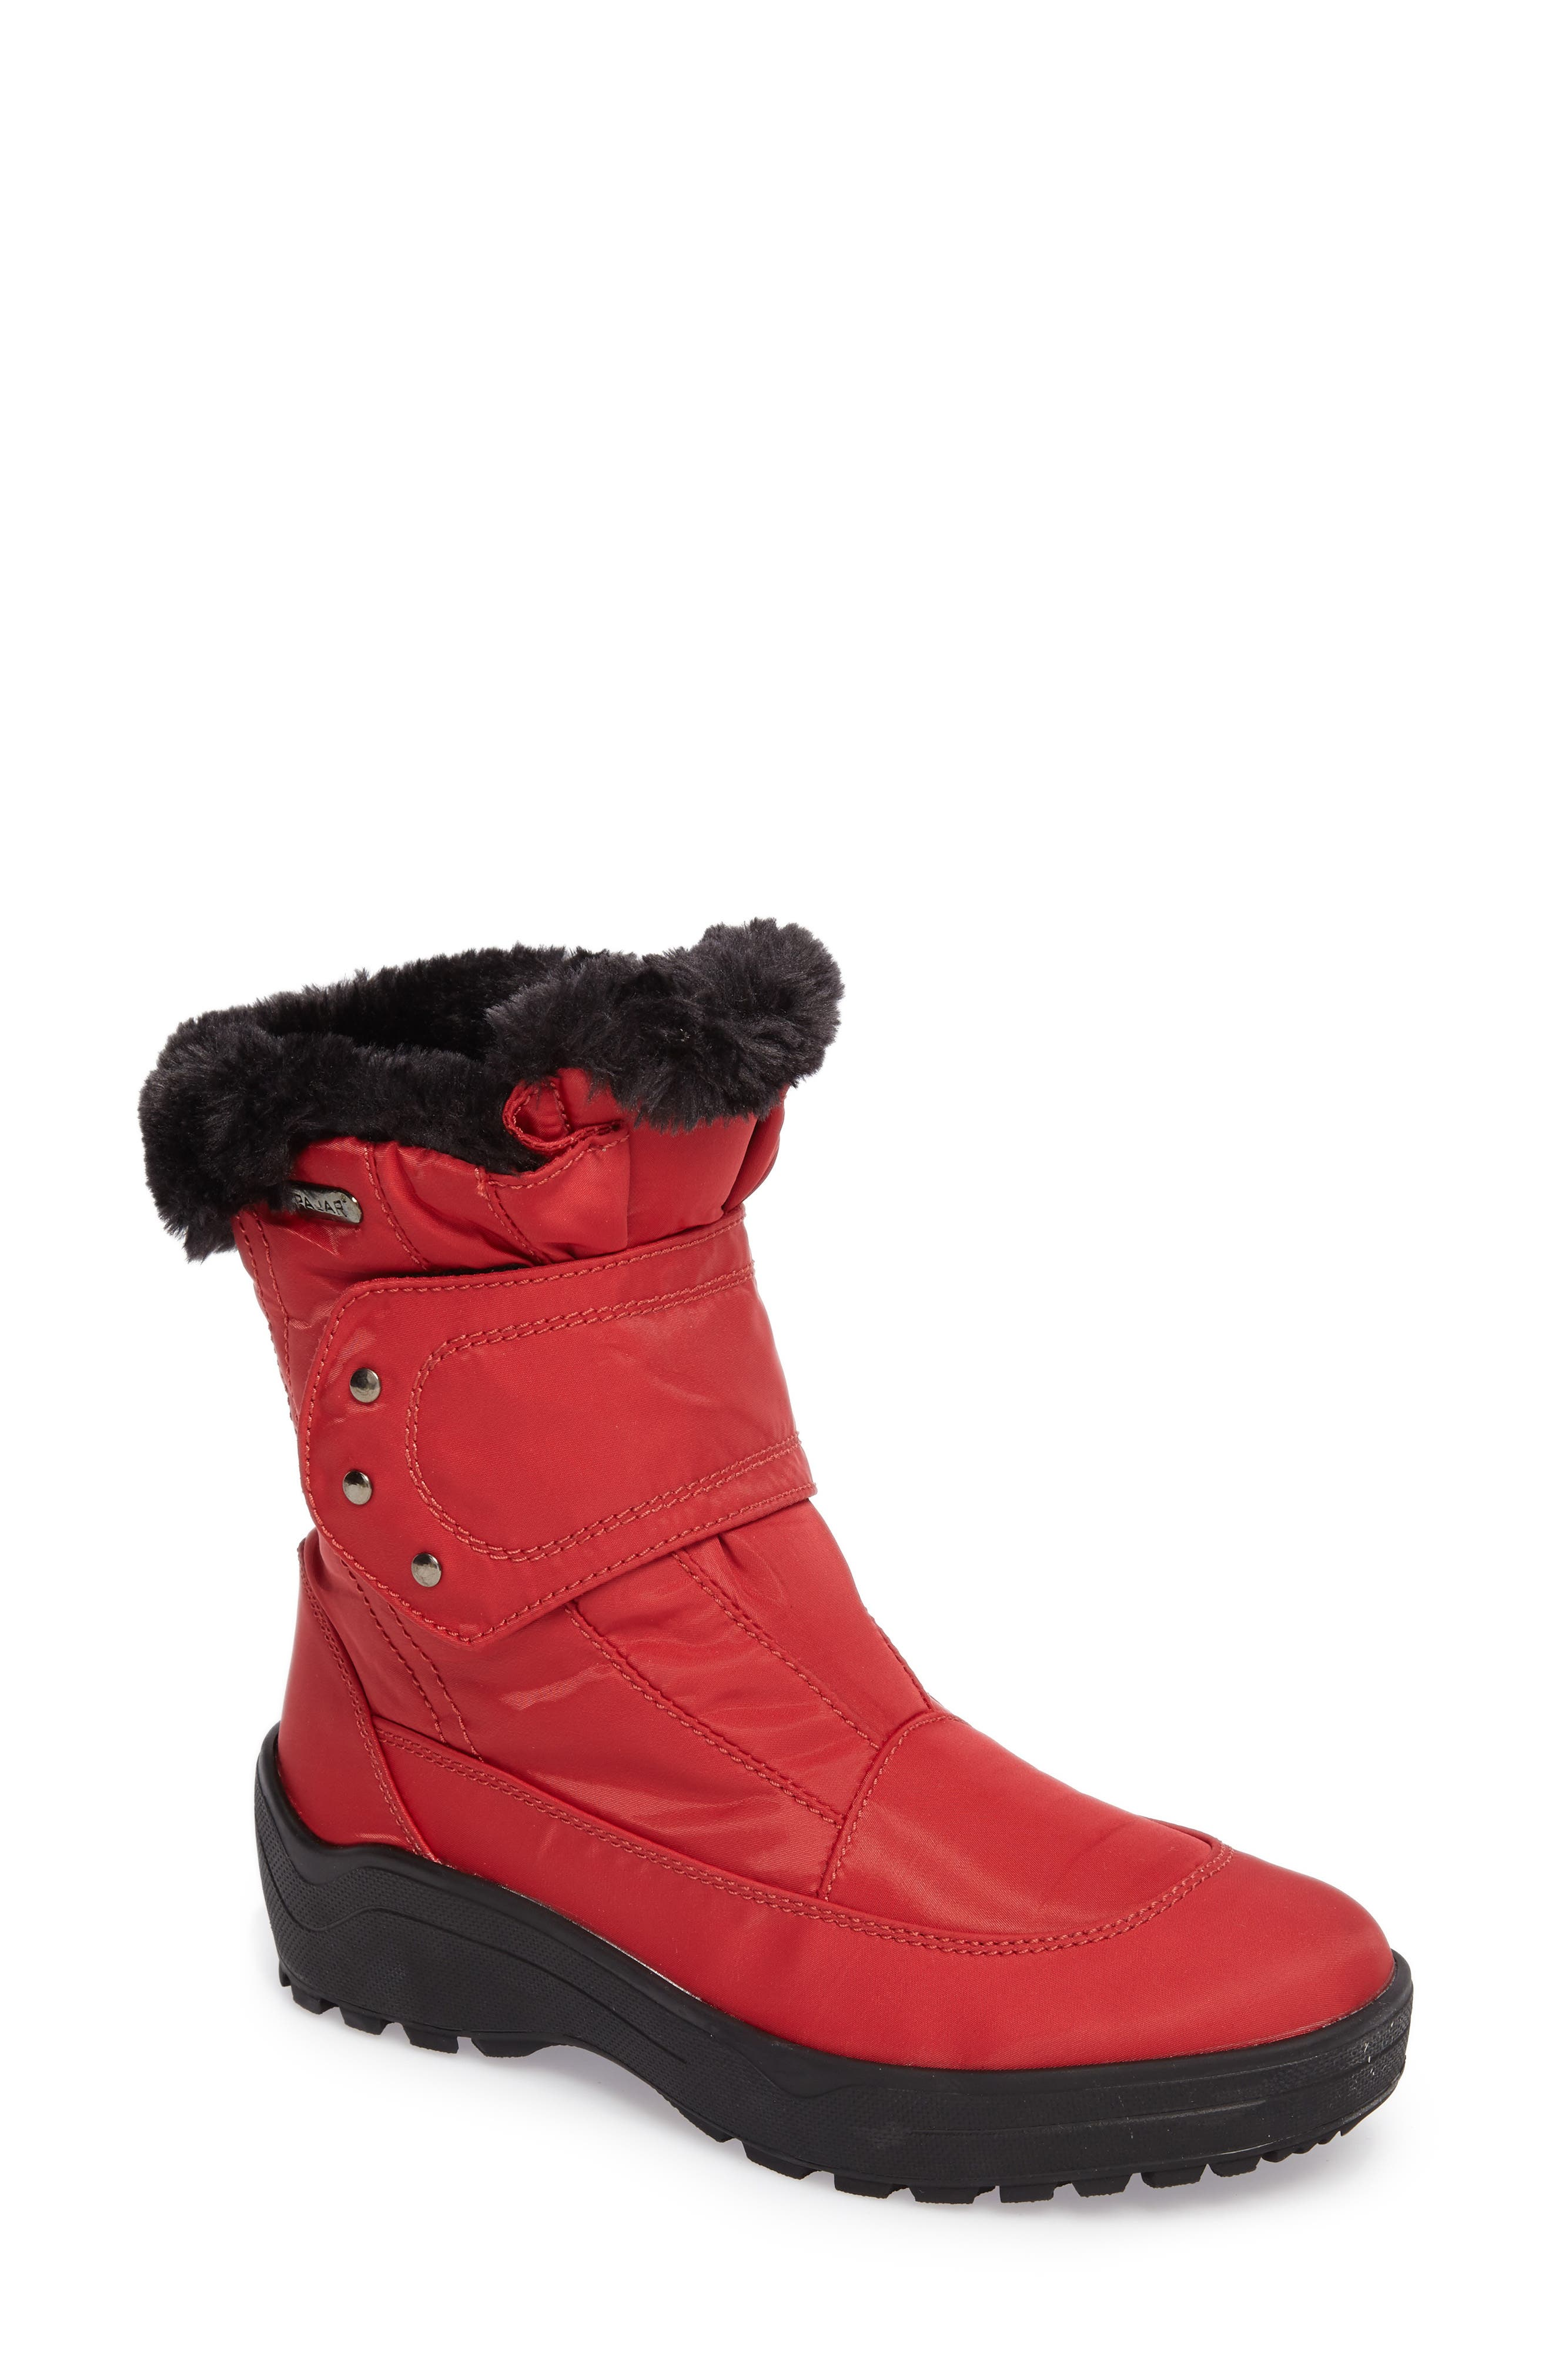 Alternate Image 1 Selected - Pajar Shoes 'Moscou' Snow Boot (Women)